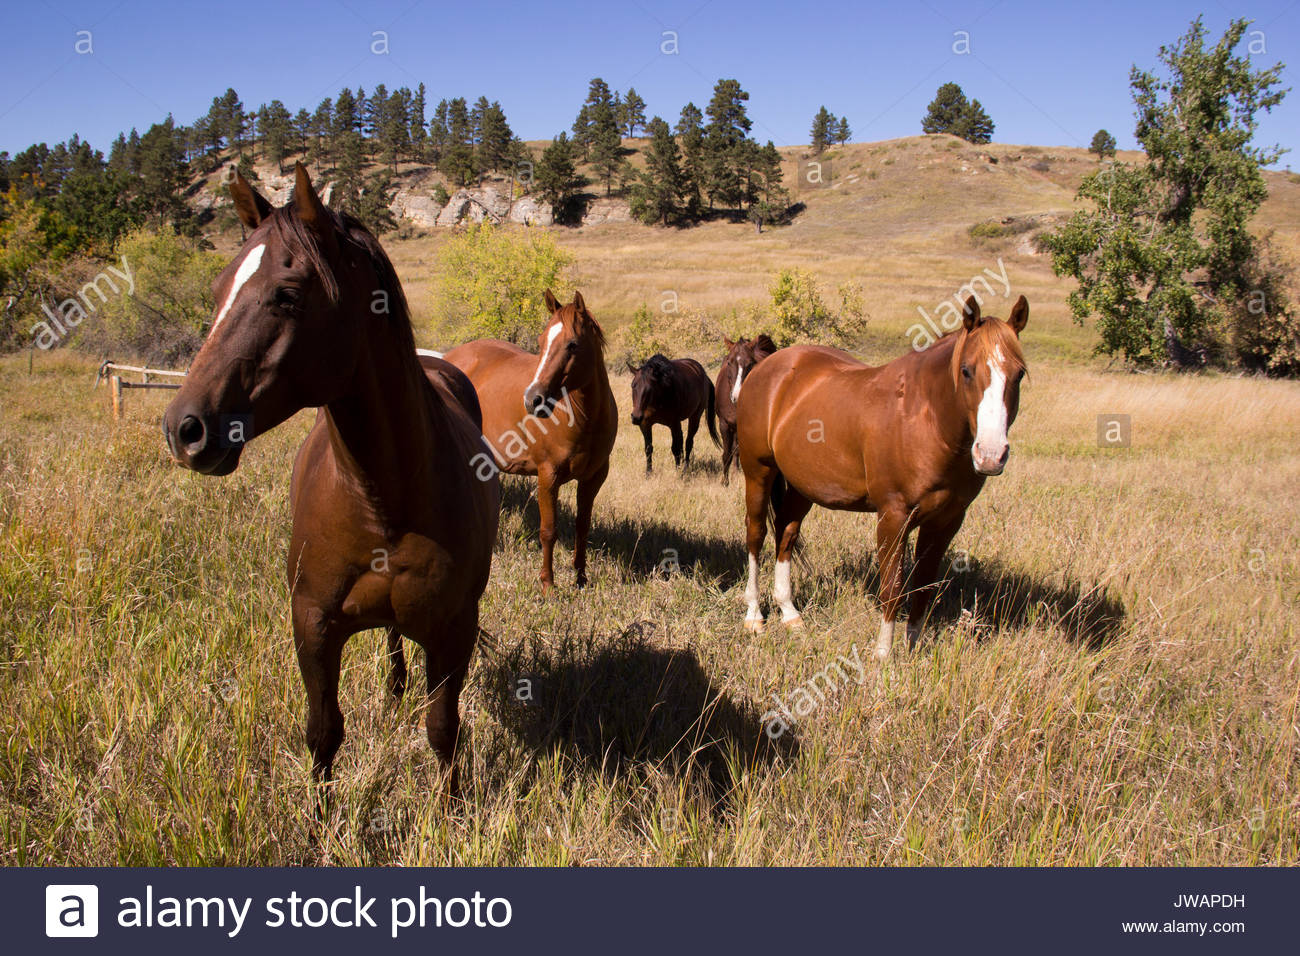 Pastured horses in a hilly western landscape. - Stock Image